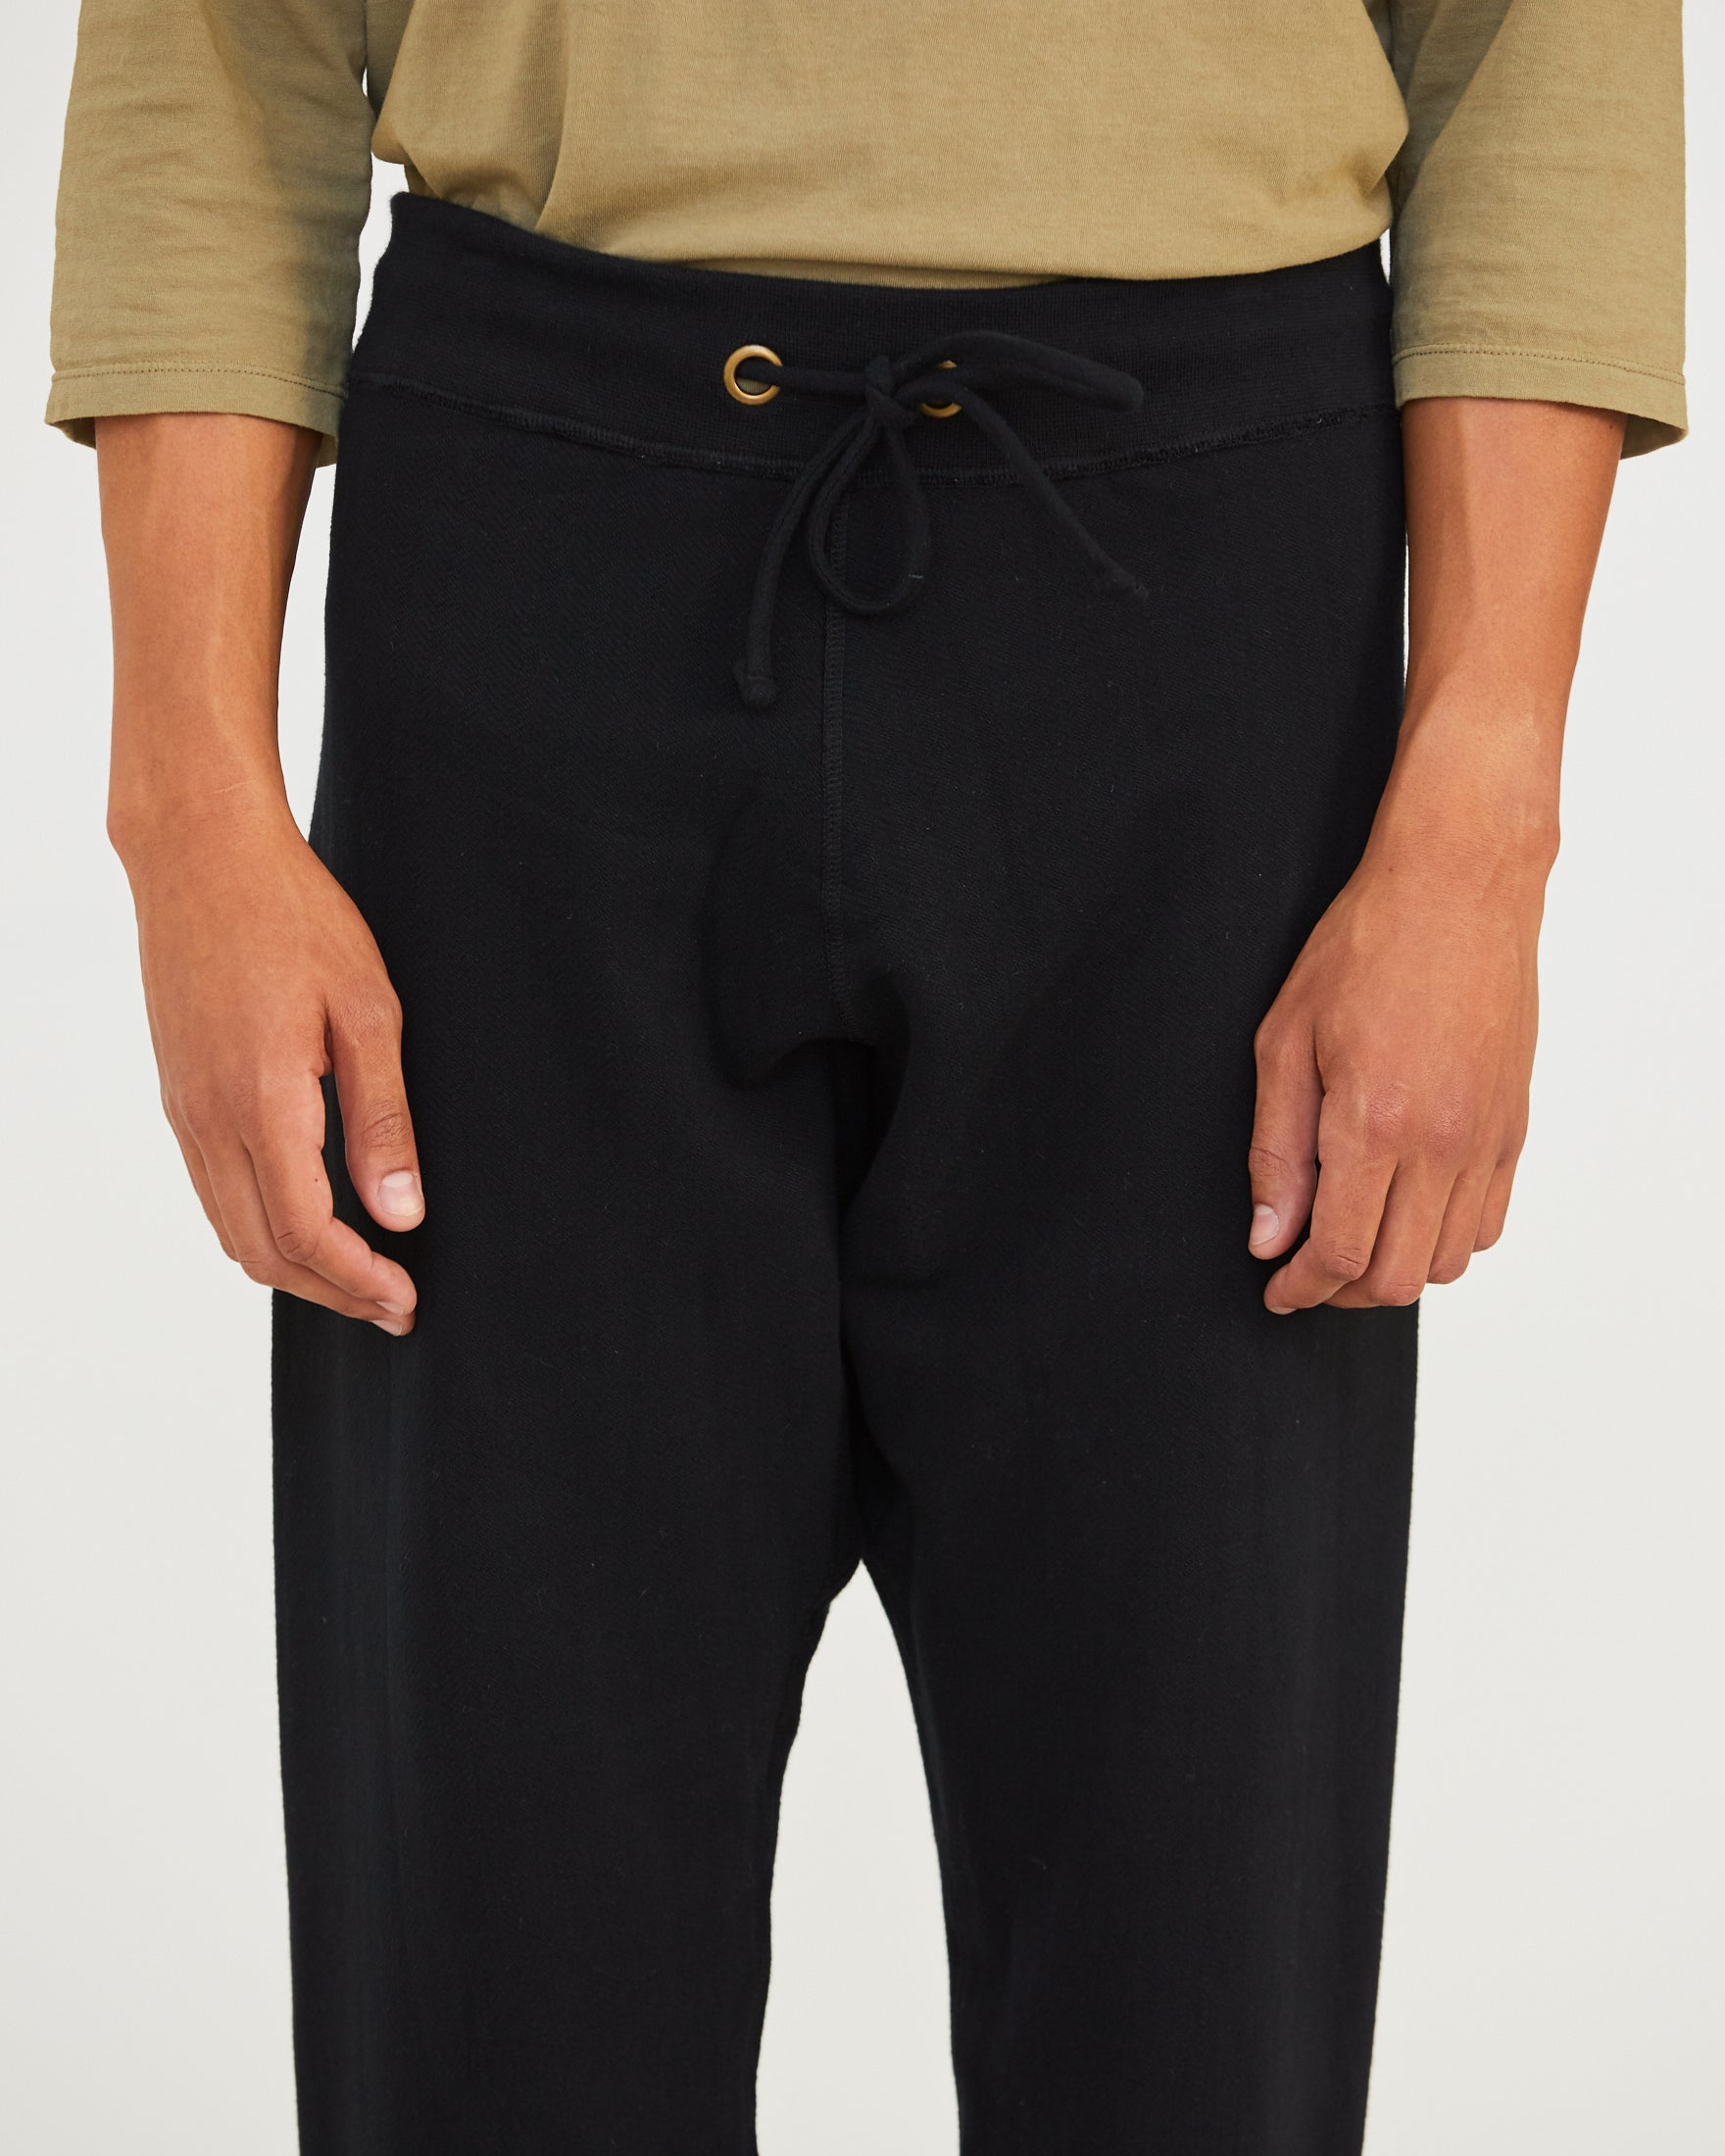 LUCA LEISURE PANT - BLACK